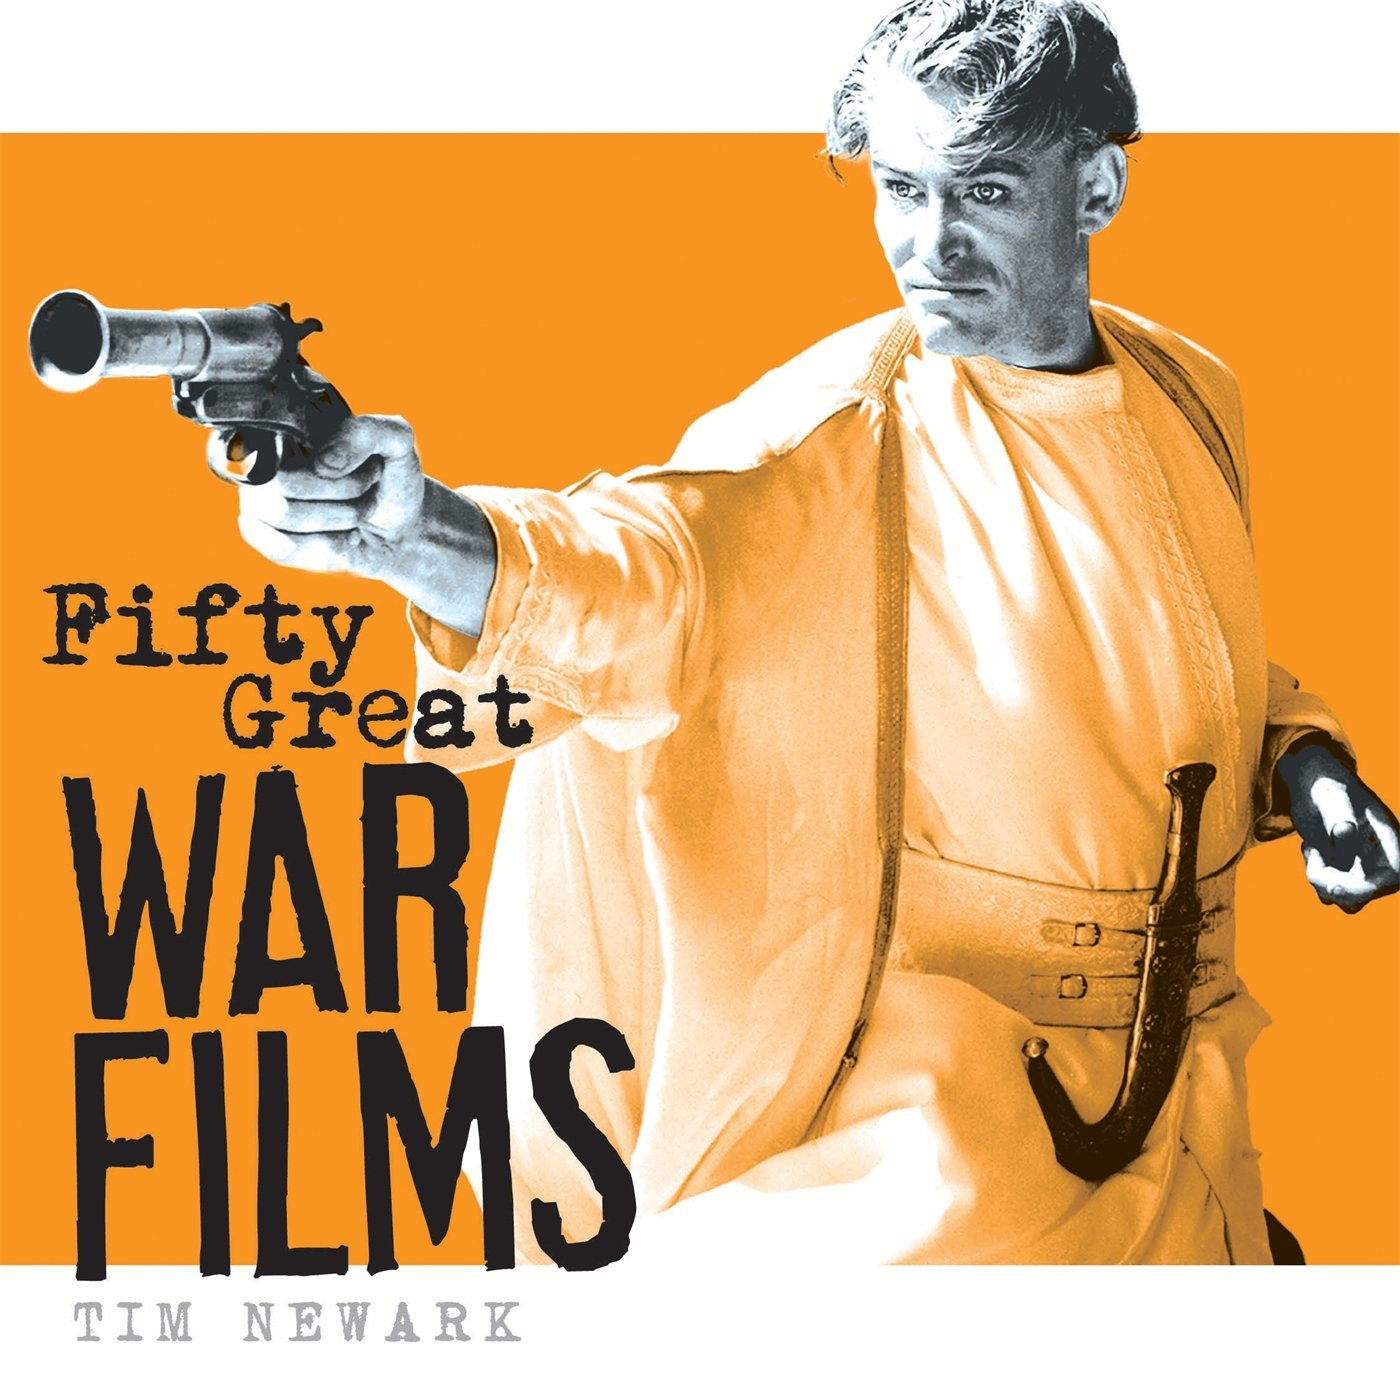 Fifty Great War Films: Amazon co uk: Tim Newark: Books